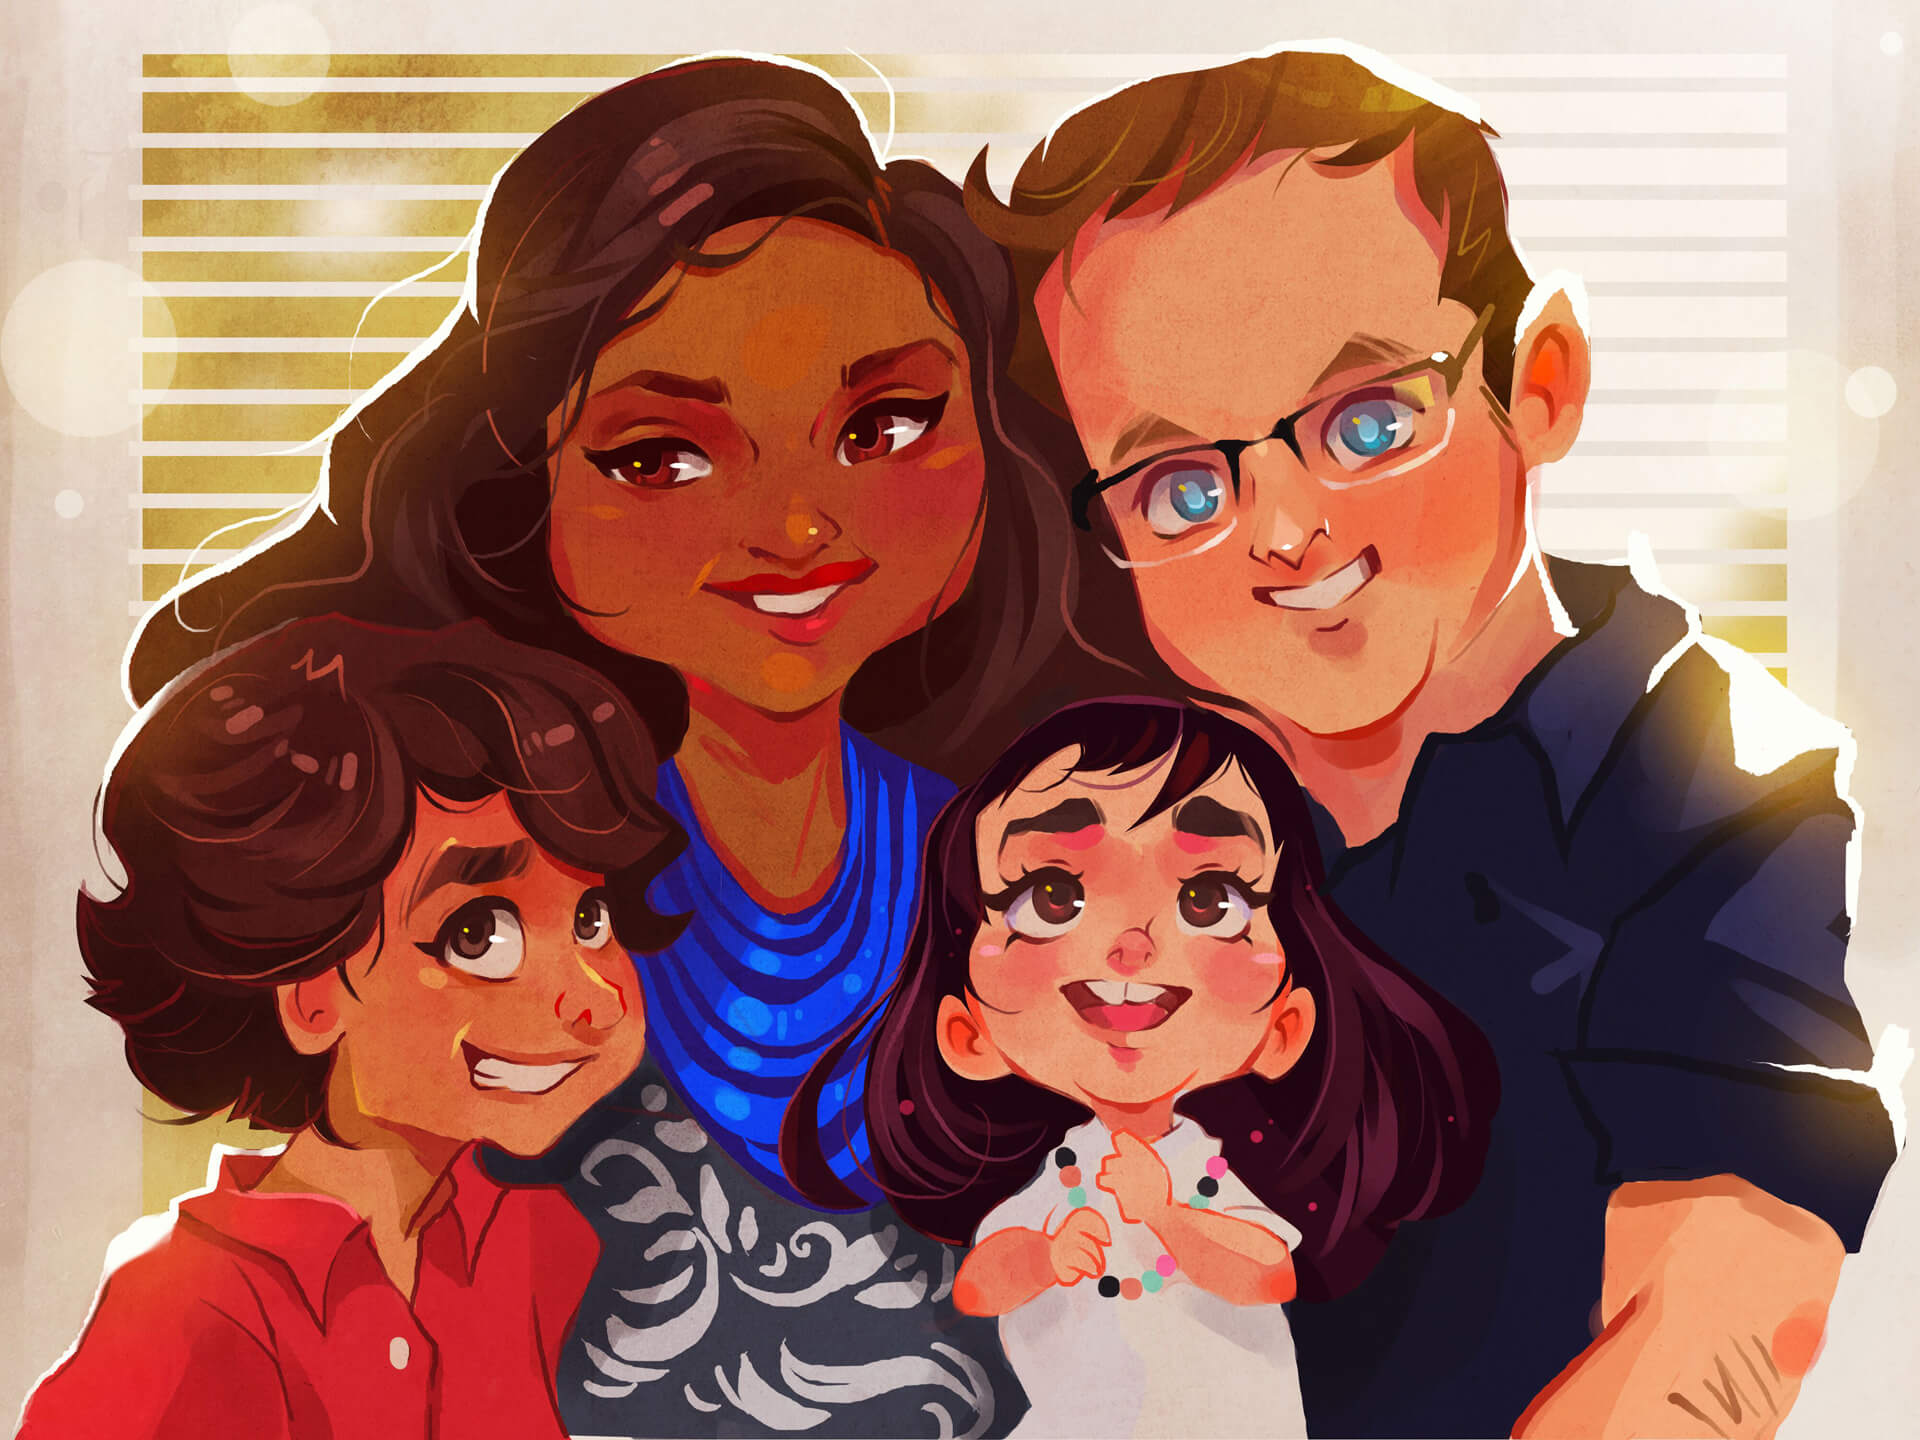 Family portrait commission inspired by Pixar done by Vince Ruz